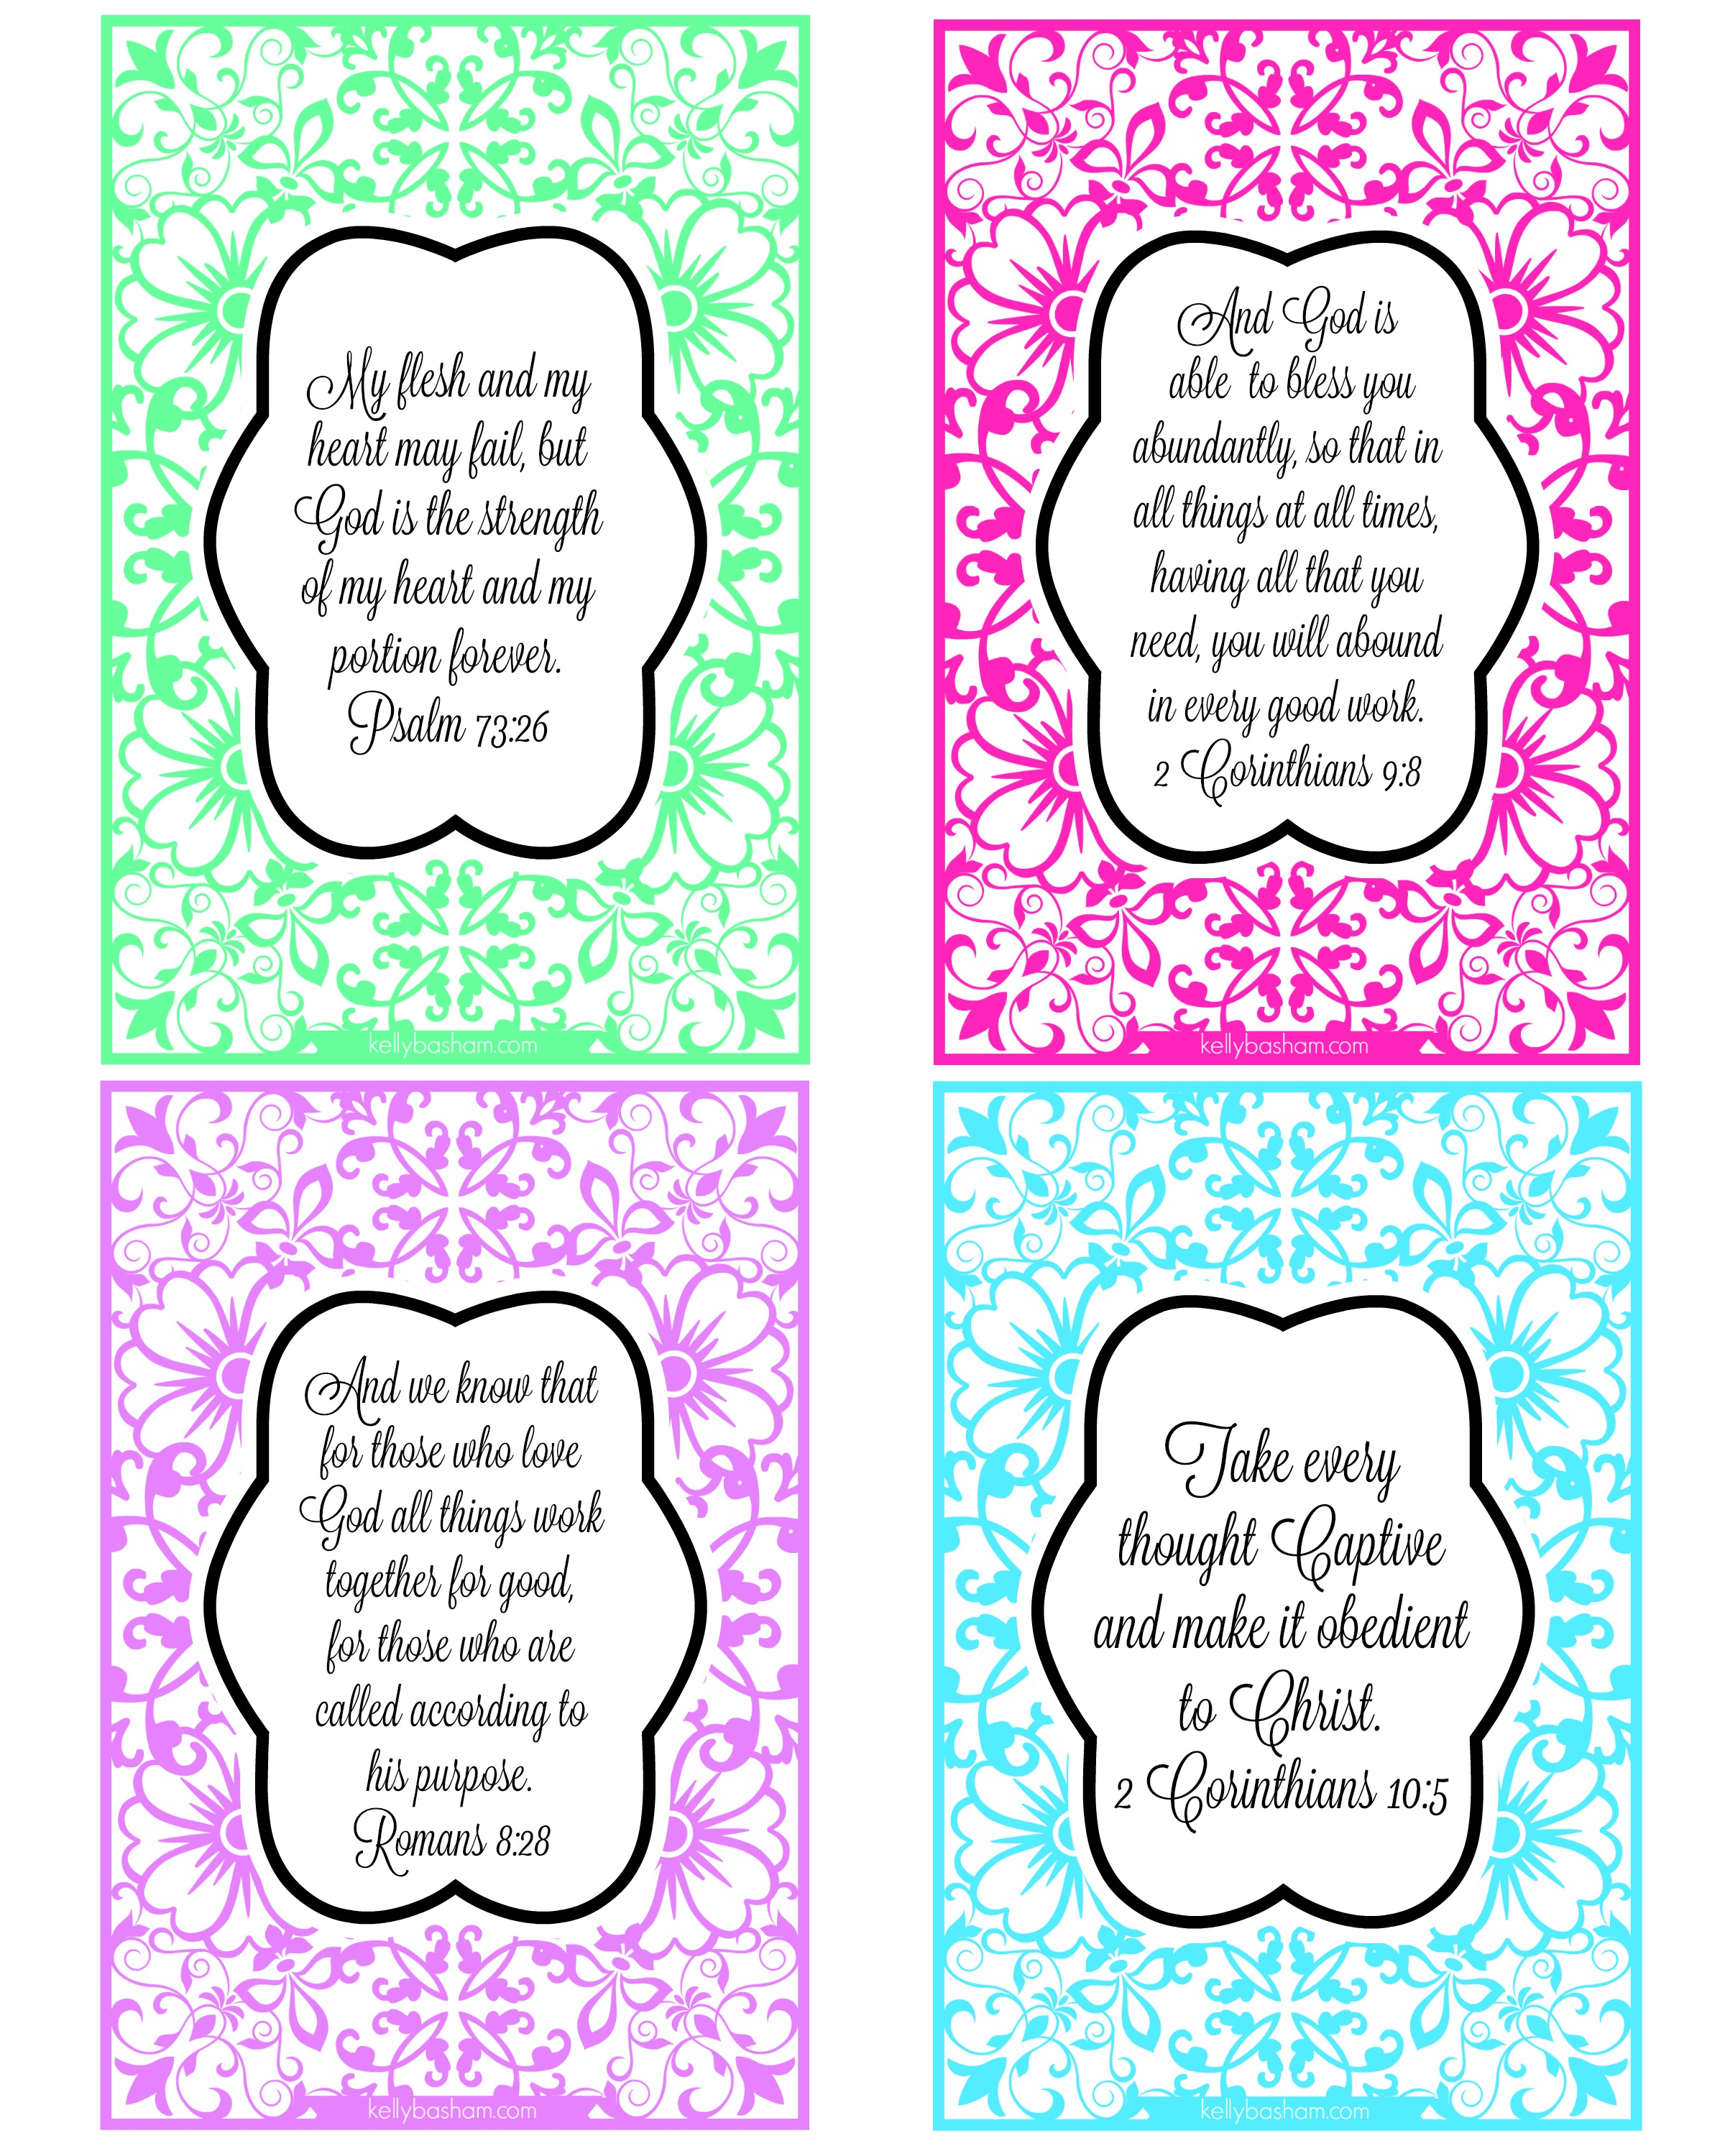 photograph about Bible Verse Cards Printable named Blossom Inside of Religion ~ Printable Scripture Playing cards